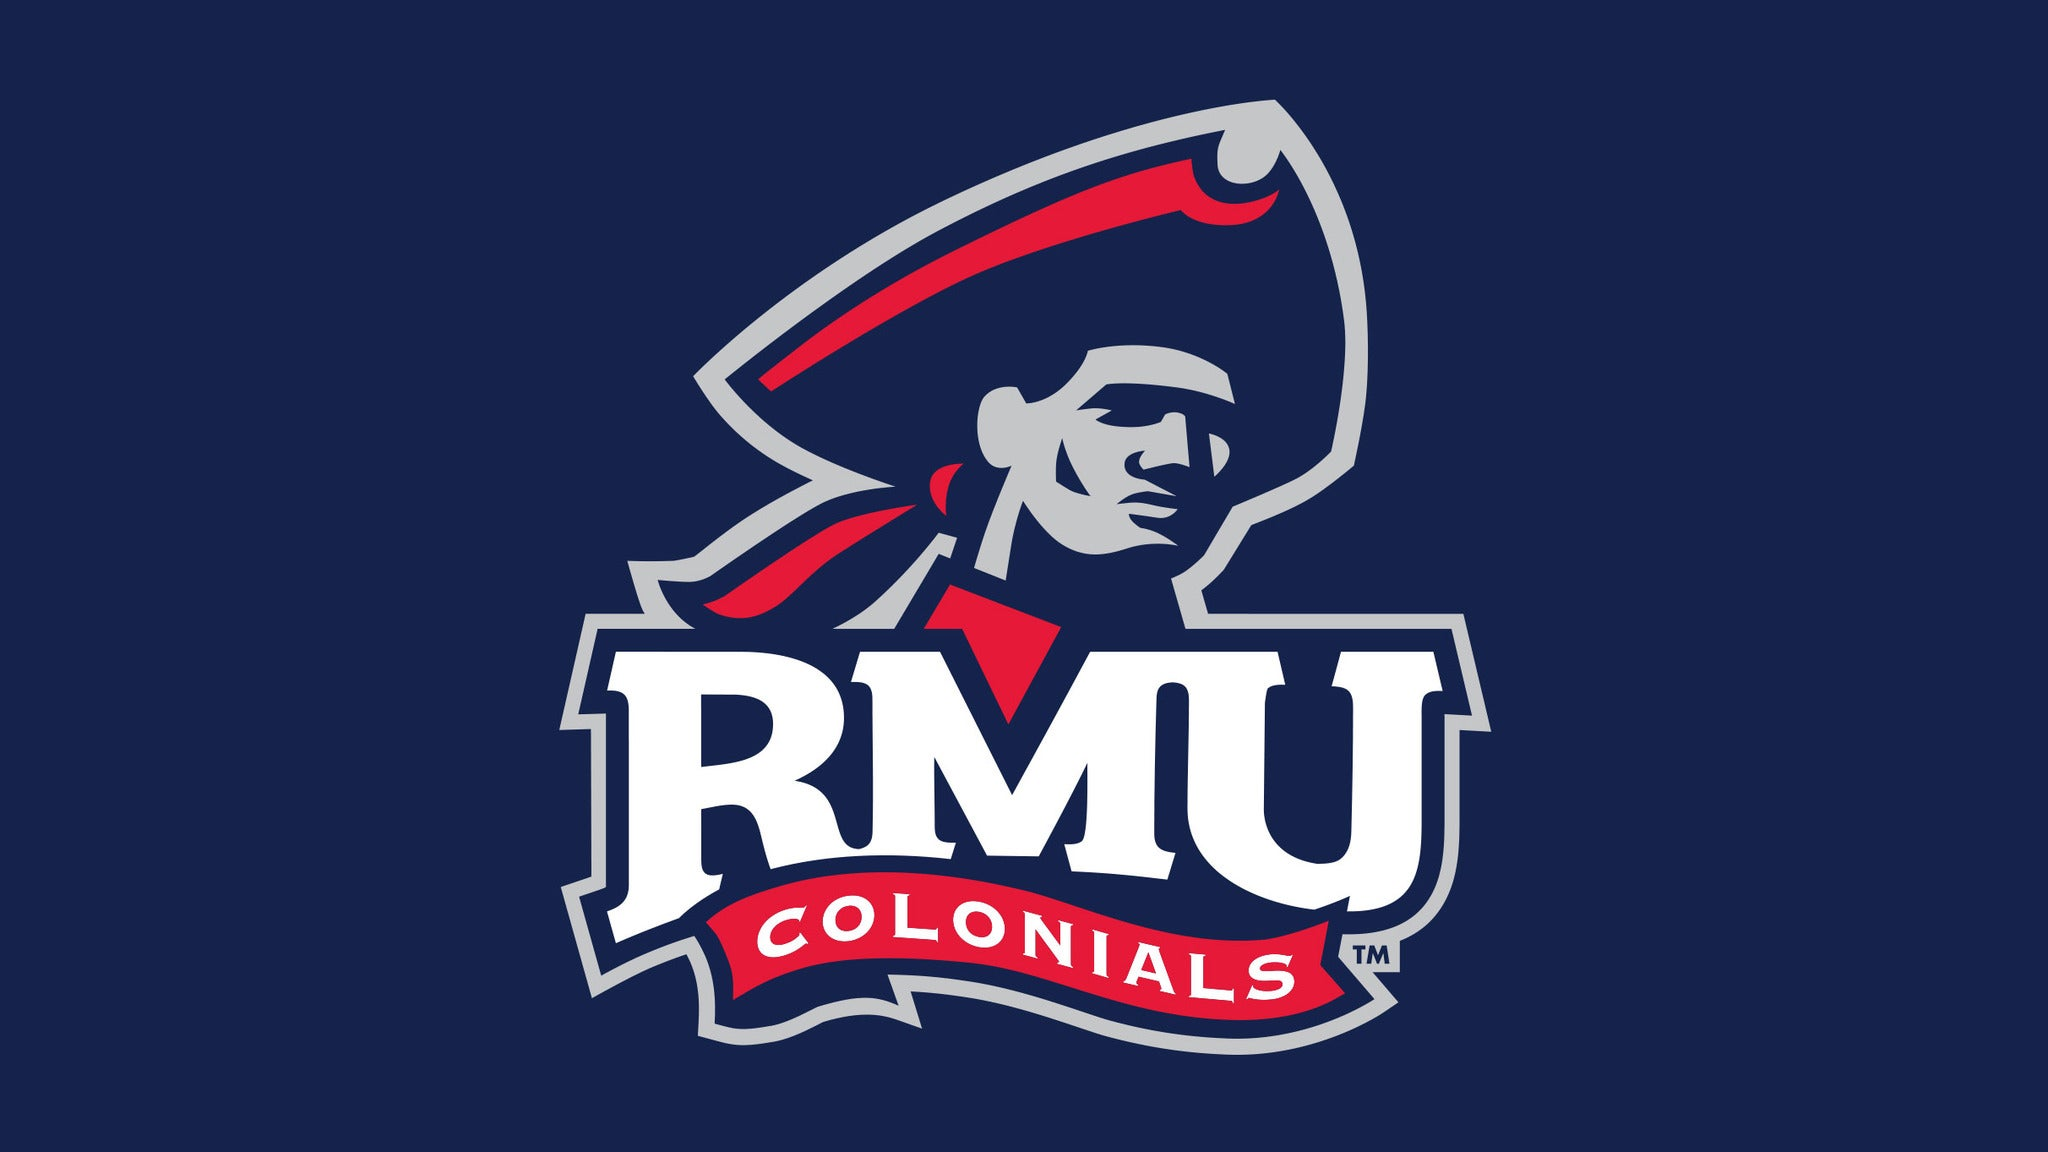 Robert Morris University Colonials Football vs. Bryant College Football